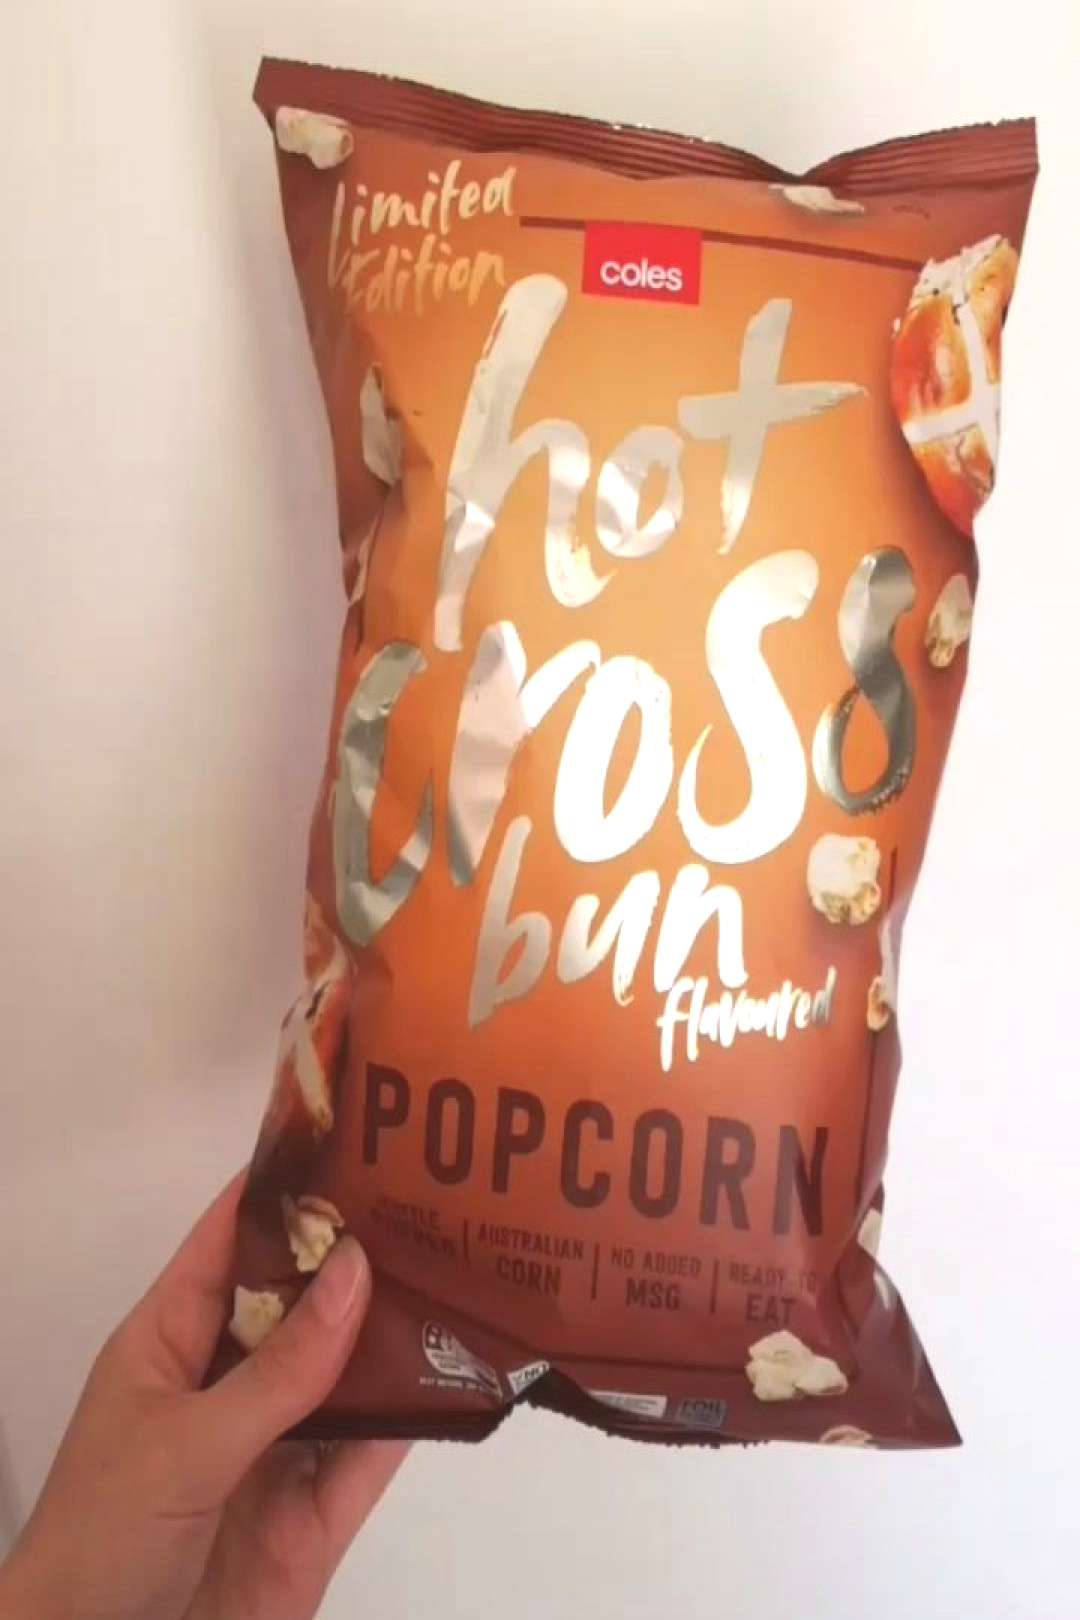 HXBP! // It's the HXB inspired snack we didn't see coming; Hot Cr